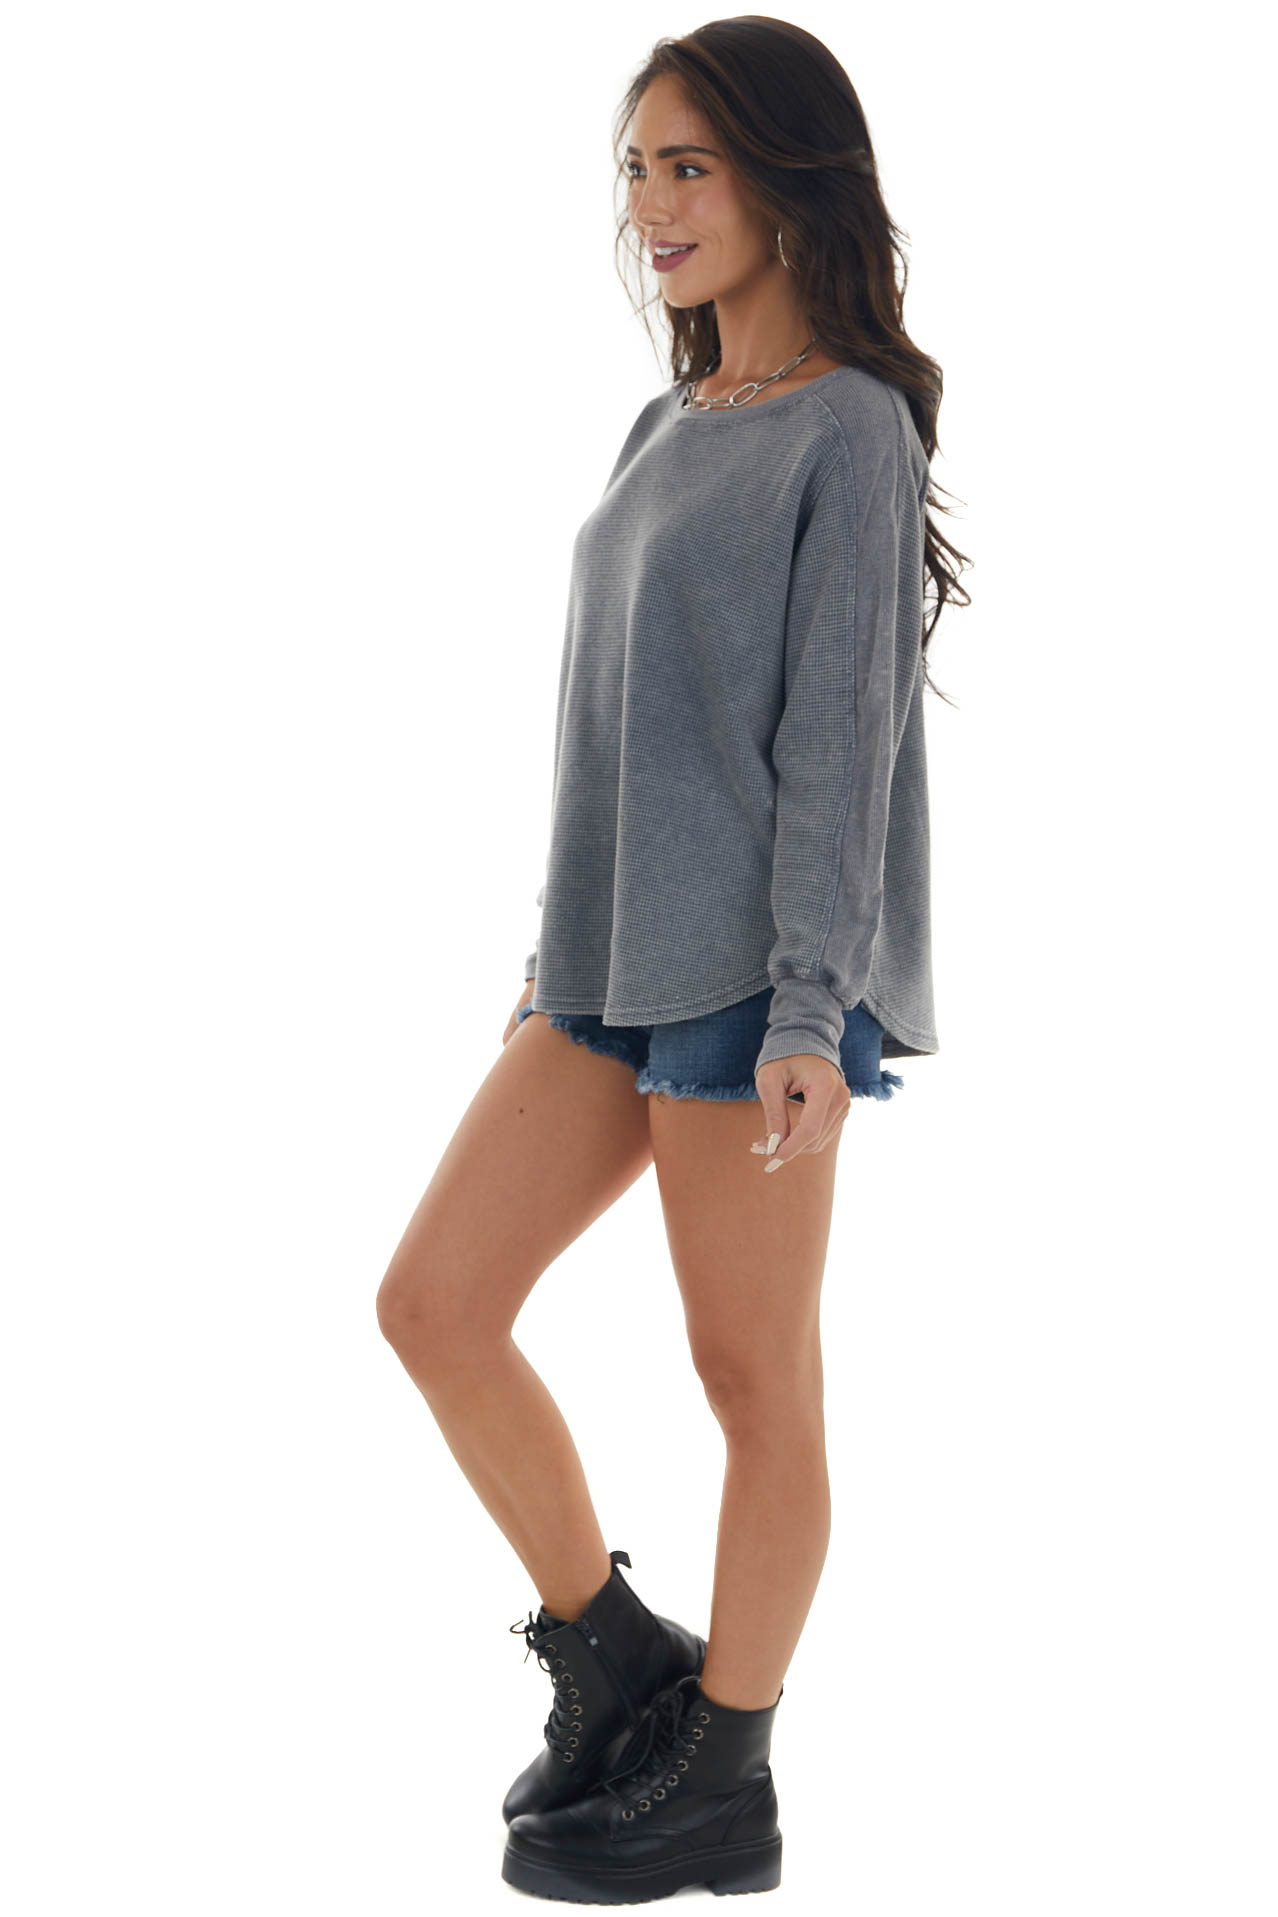 Stormy Grey Mineral Wash Thermal Knit Top